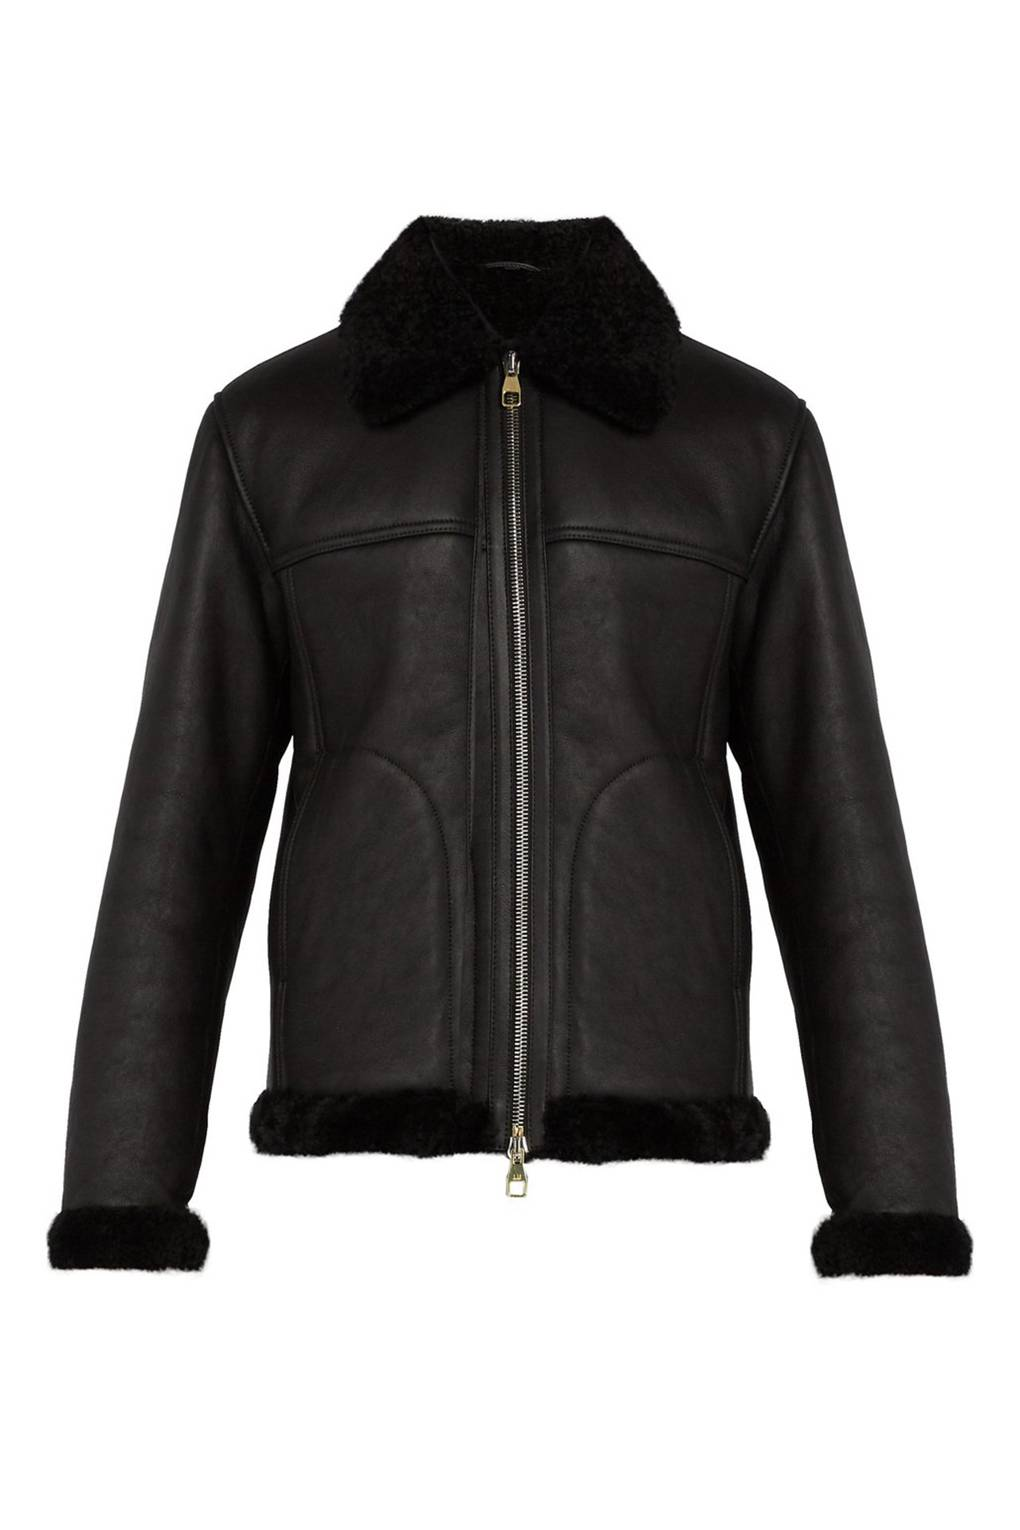 Buy Leather stylish jackets online picture trends